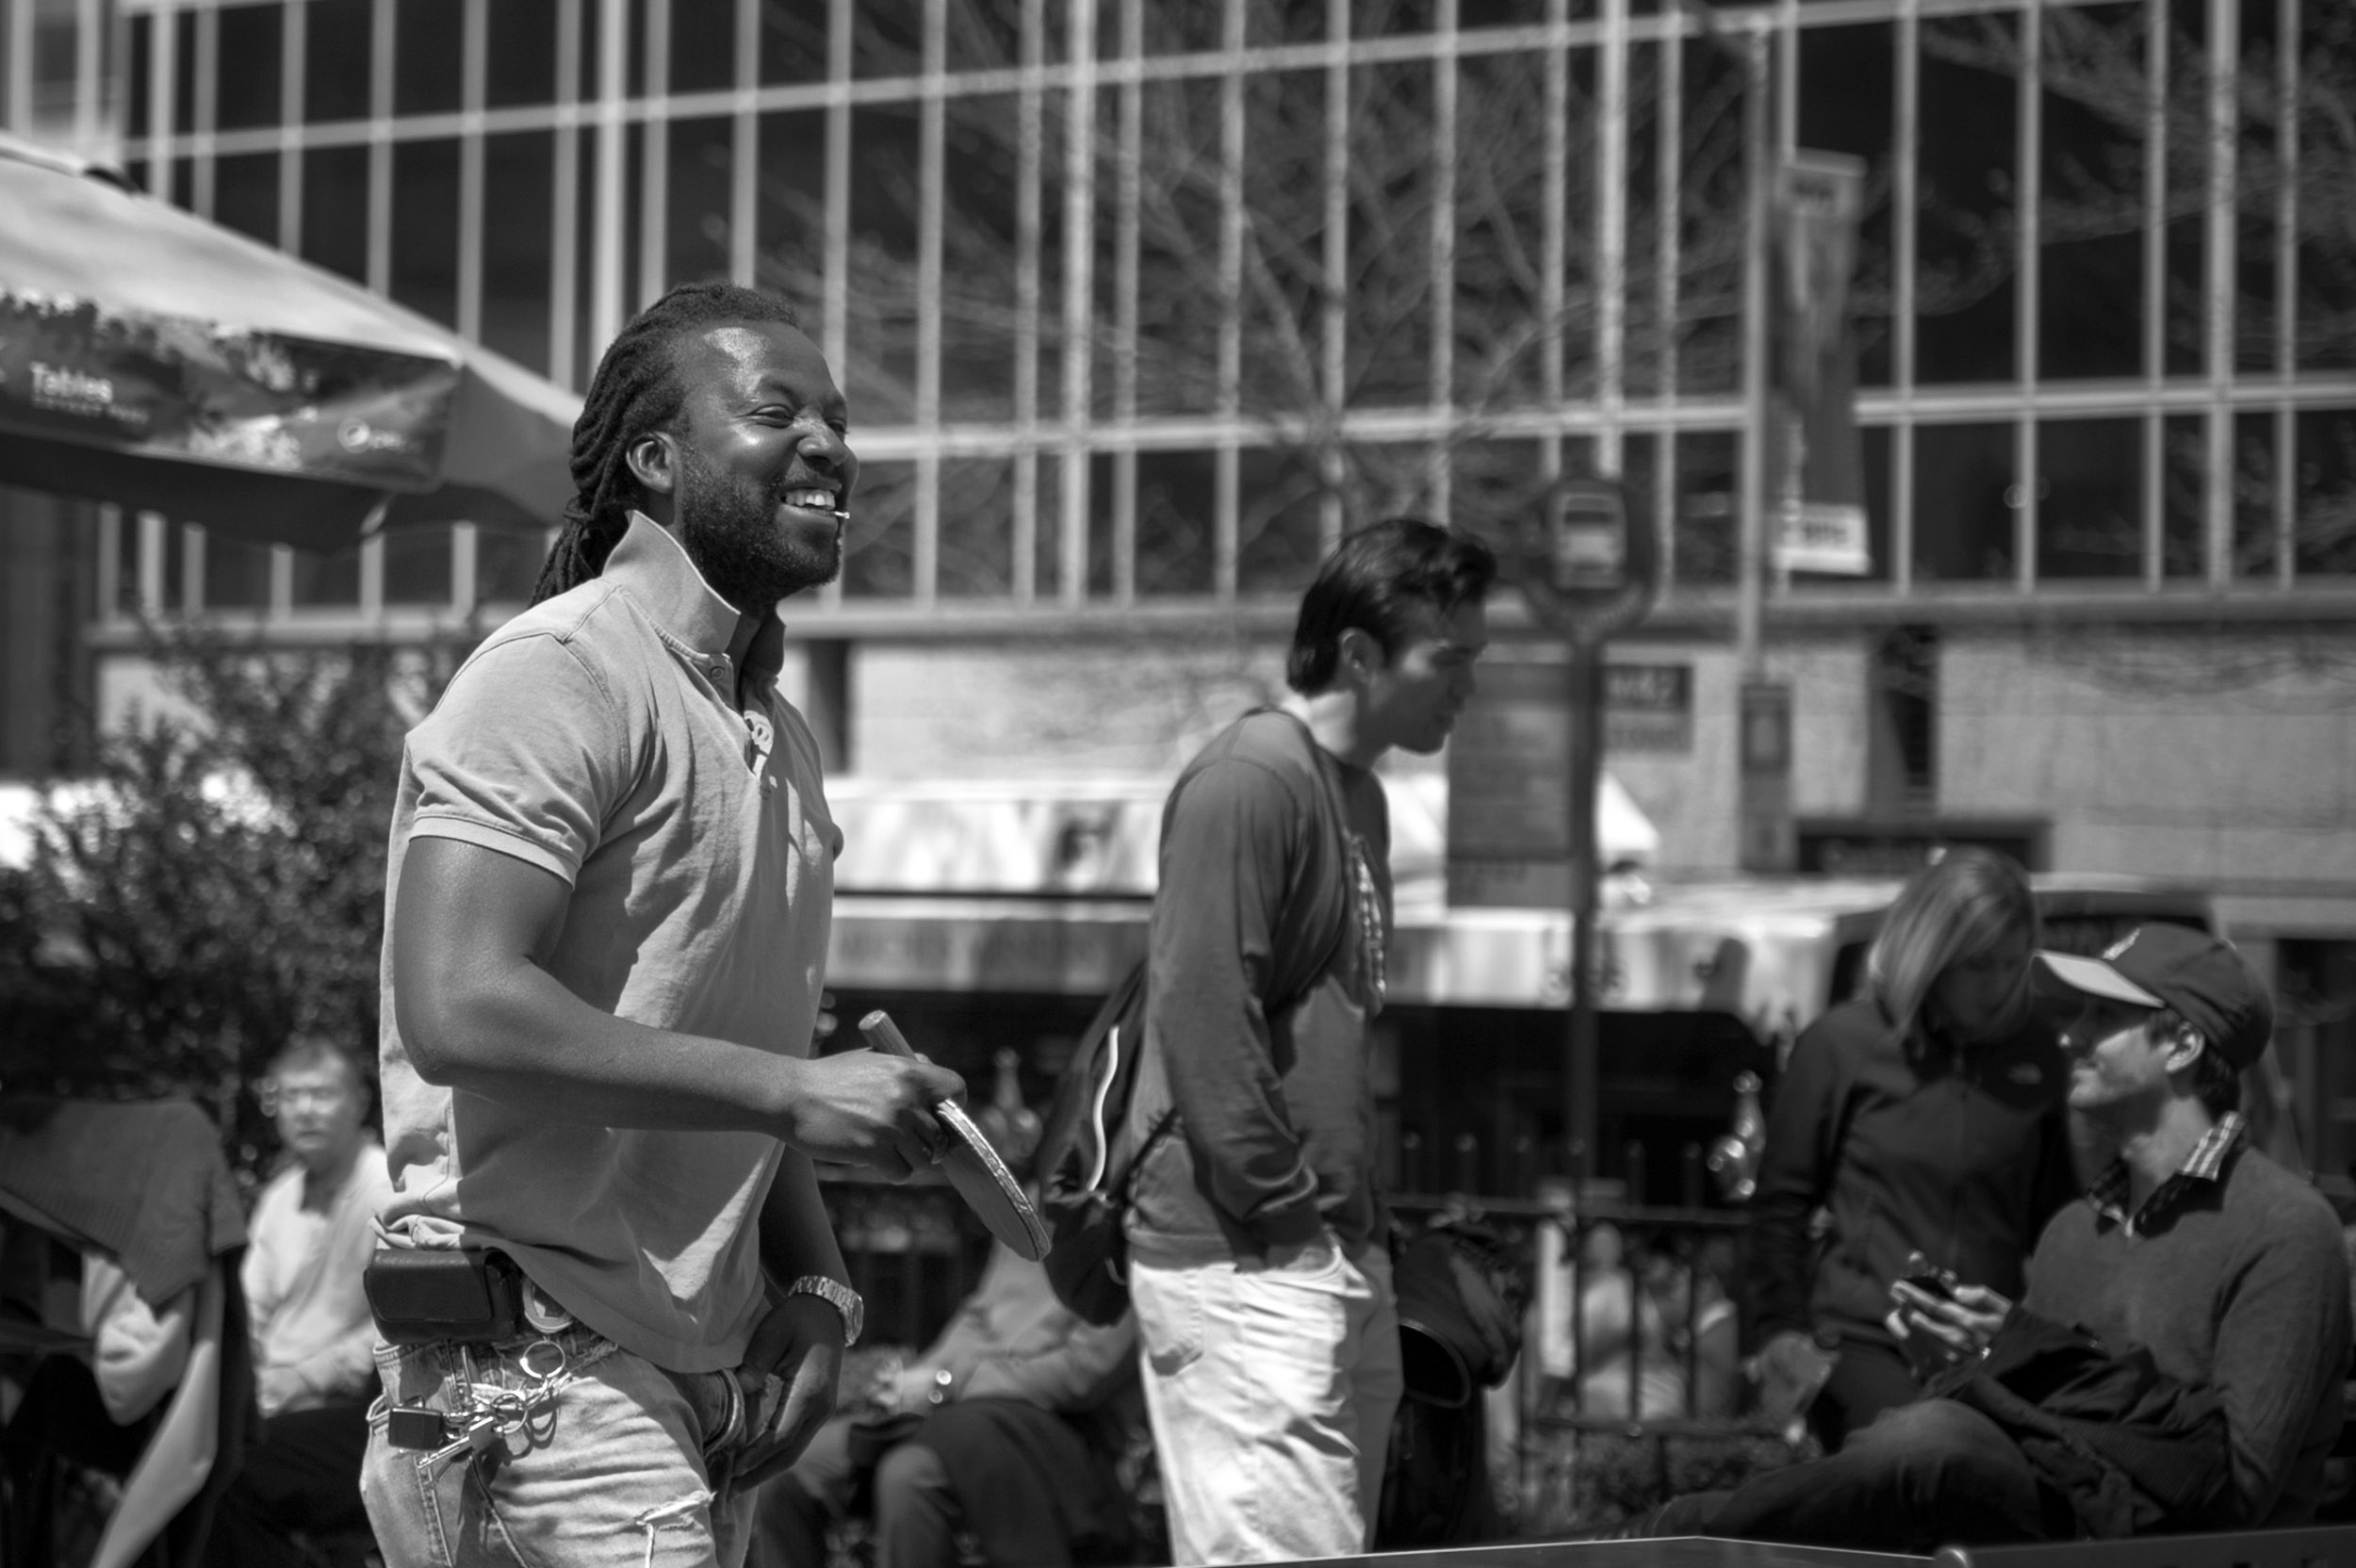 pam_korman_photography-ping-pong_diplomacy-bryant_park_new_york_city-06.jpg